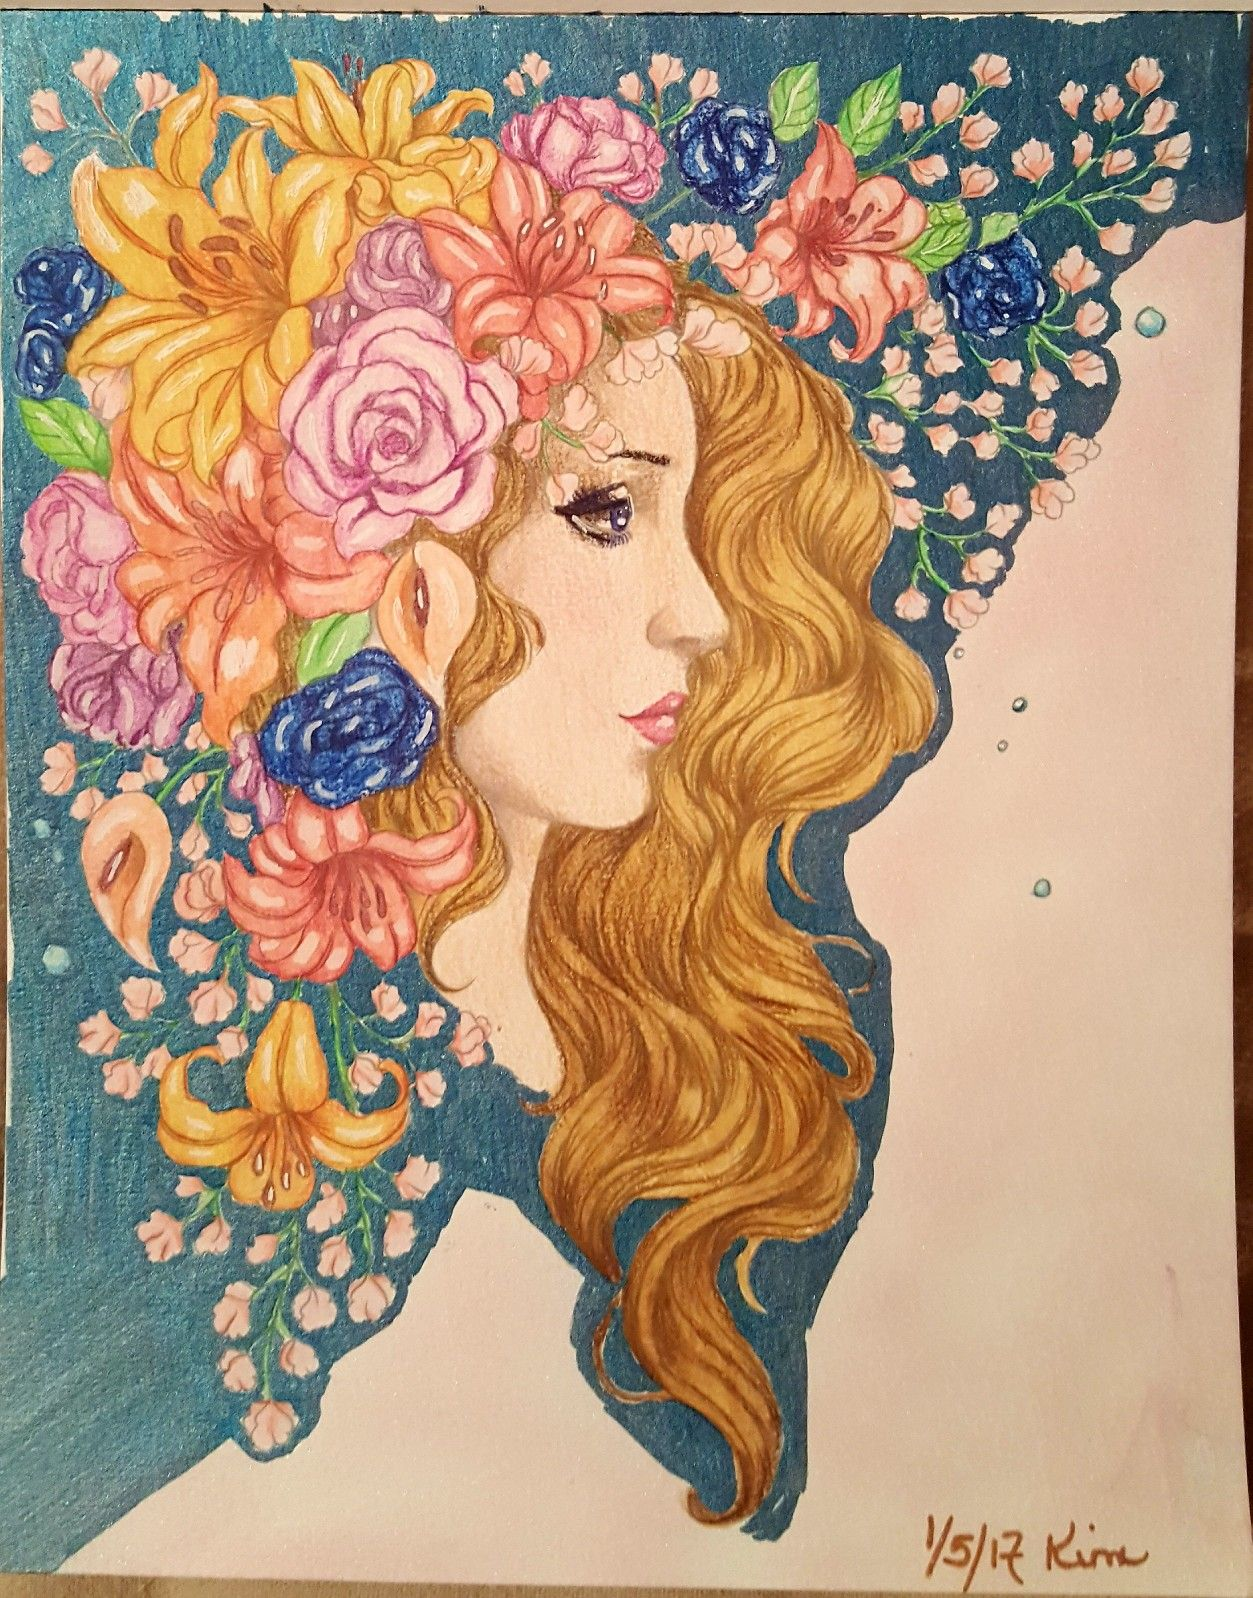 Prima Princesses Coloring Book Derwent Inktense Pencils Used With Water Brush This Is Very Heavy Toothy Pap Princess Coloring Coloring Books Coloring Pages